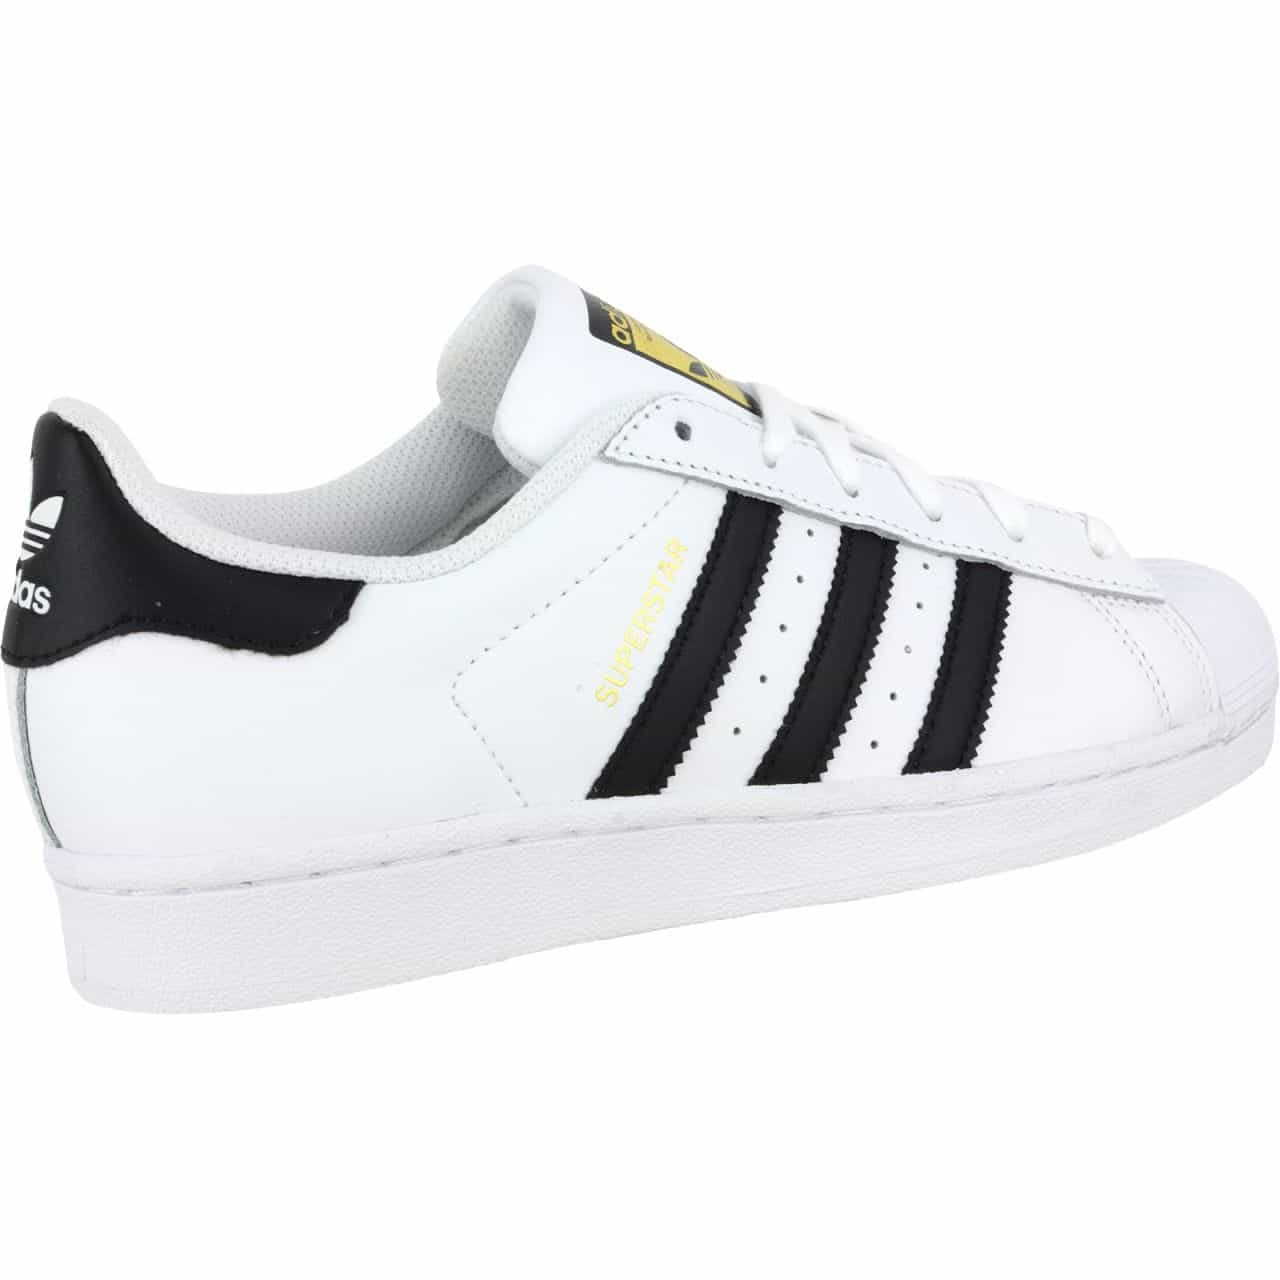 Adidas Superstar W c77153 adidasi originali